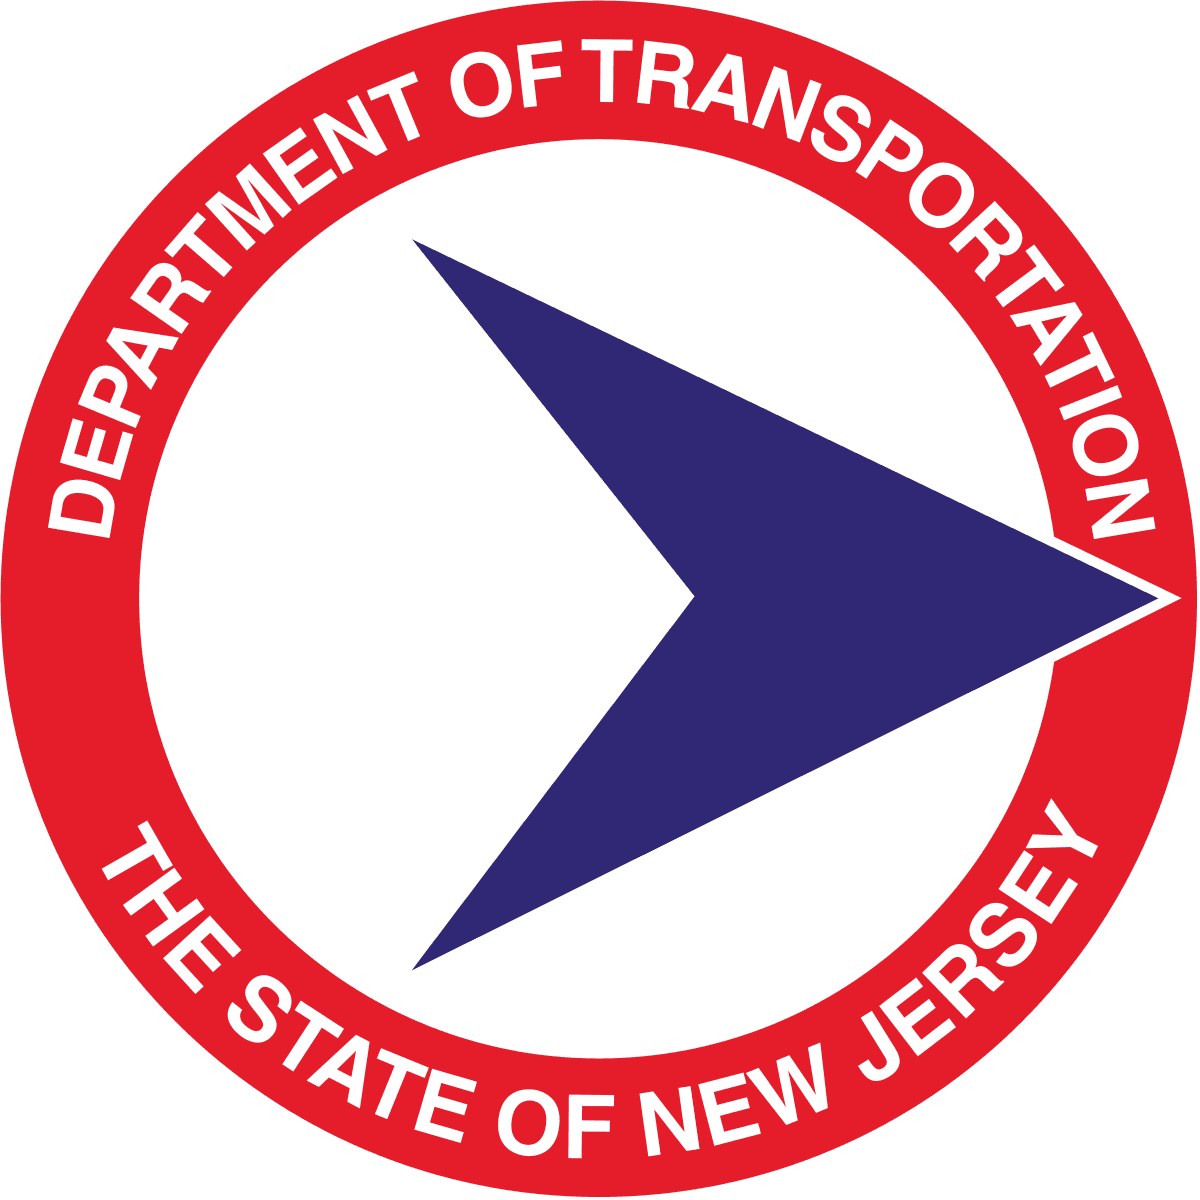 New Jersey Department of Transportation Seal